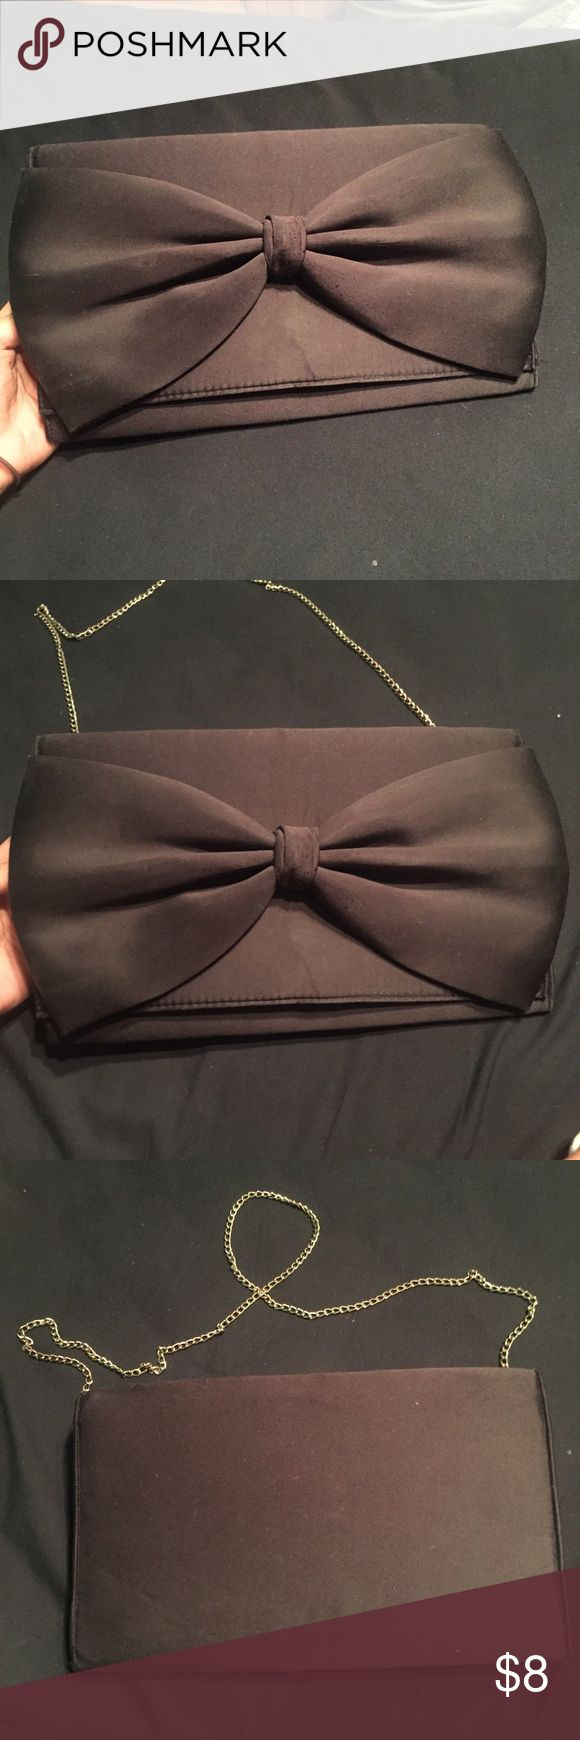 H&M Little Black Bow Purse/Clutch H&M purse that can turn into a clutch. Very chic, has been worn a handful of time. Has metal chain that can hide inside, 1 zipped pocket on inside. Has slight stain. H&M Bags